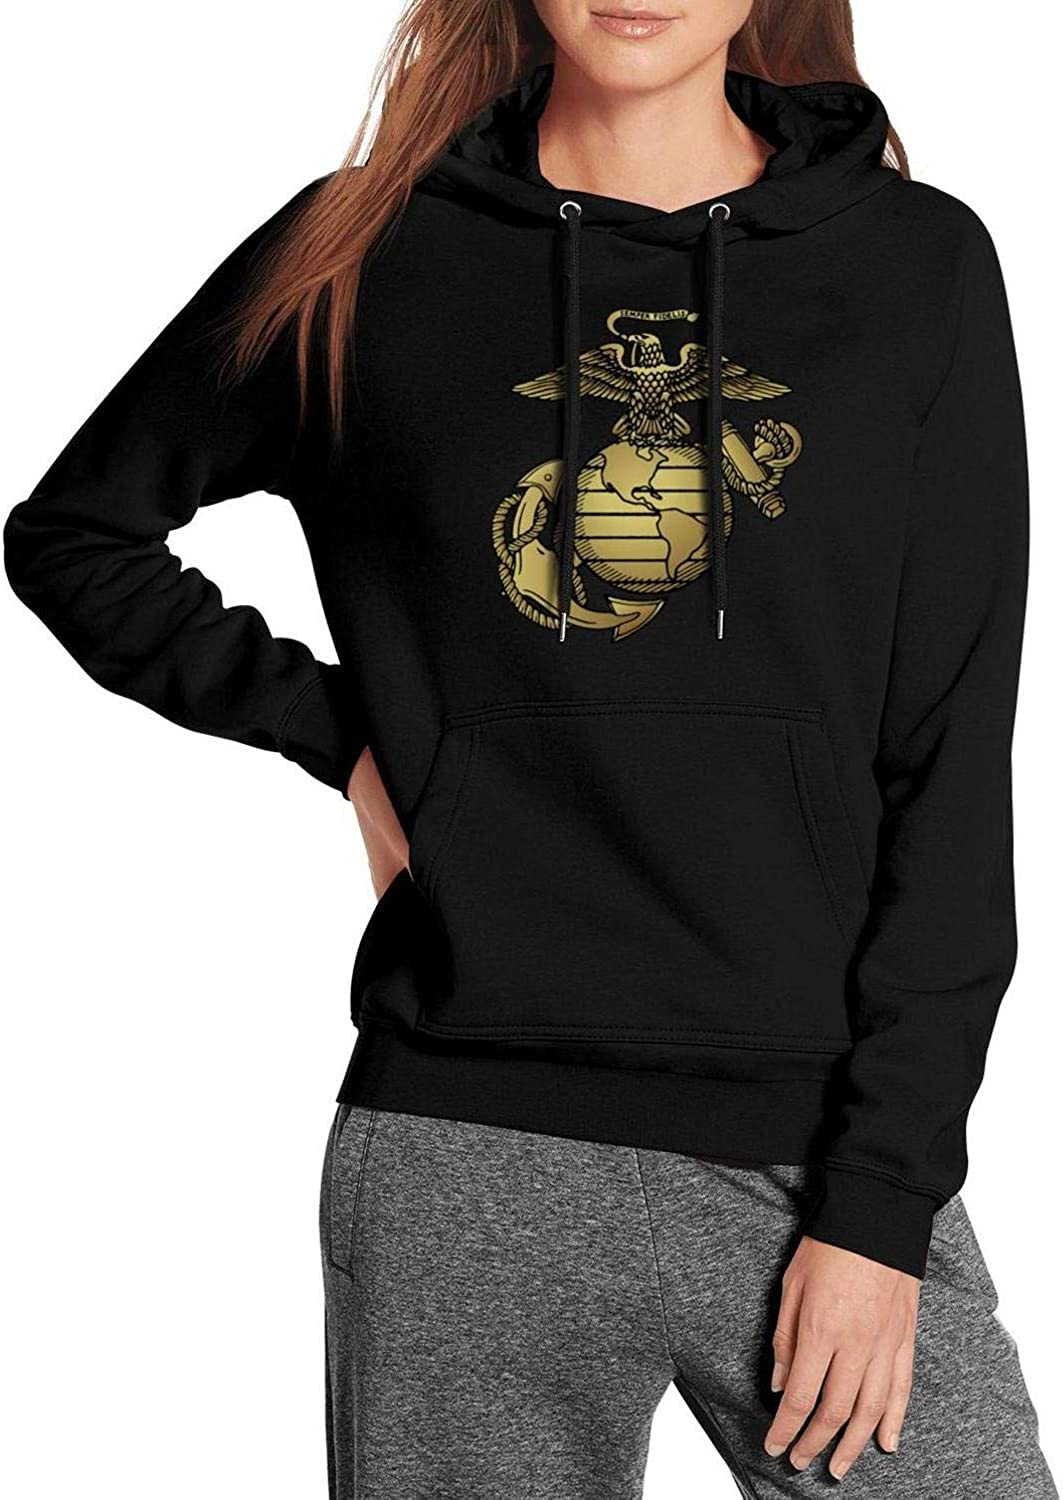 ZJING United States Marine Corps Emblem Womens Hoodie Cute Comfortable Pullover Hooded Sweatshirt